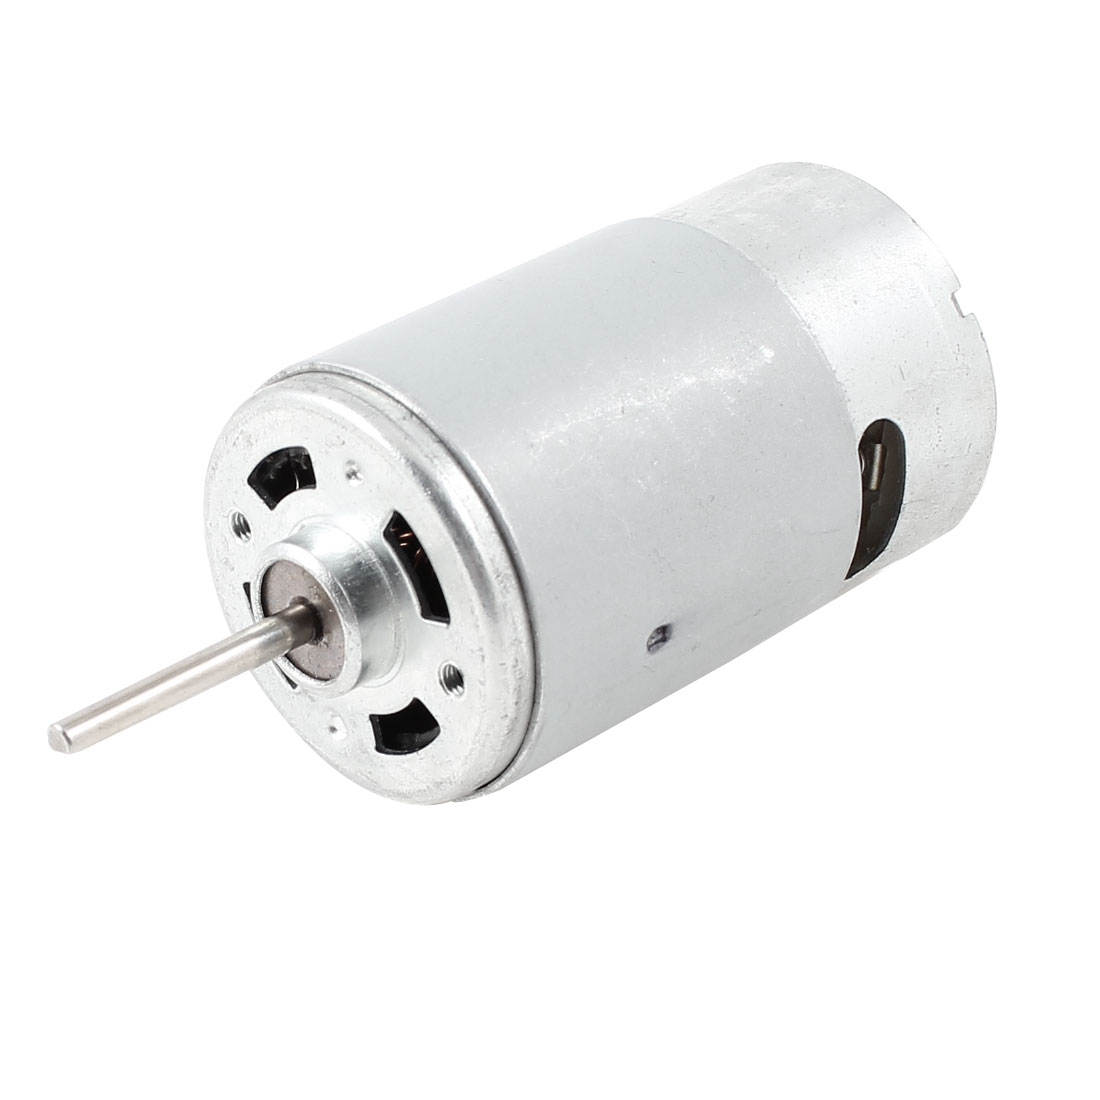 DC 5-12V 6100-16000RPM High Torque 2 Terminal Long Shaft Electric Magnetic Micro Motor